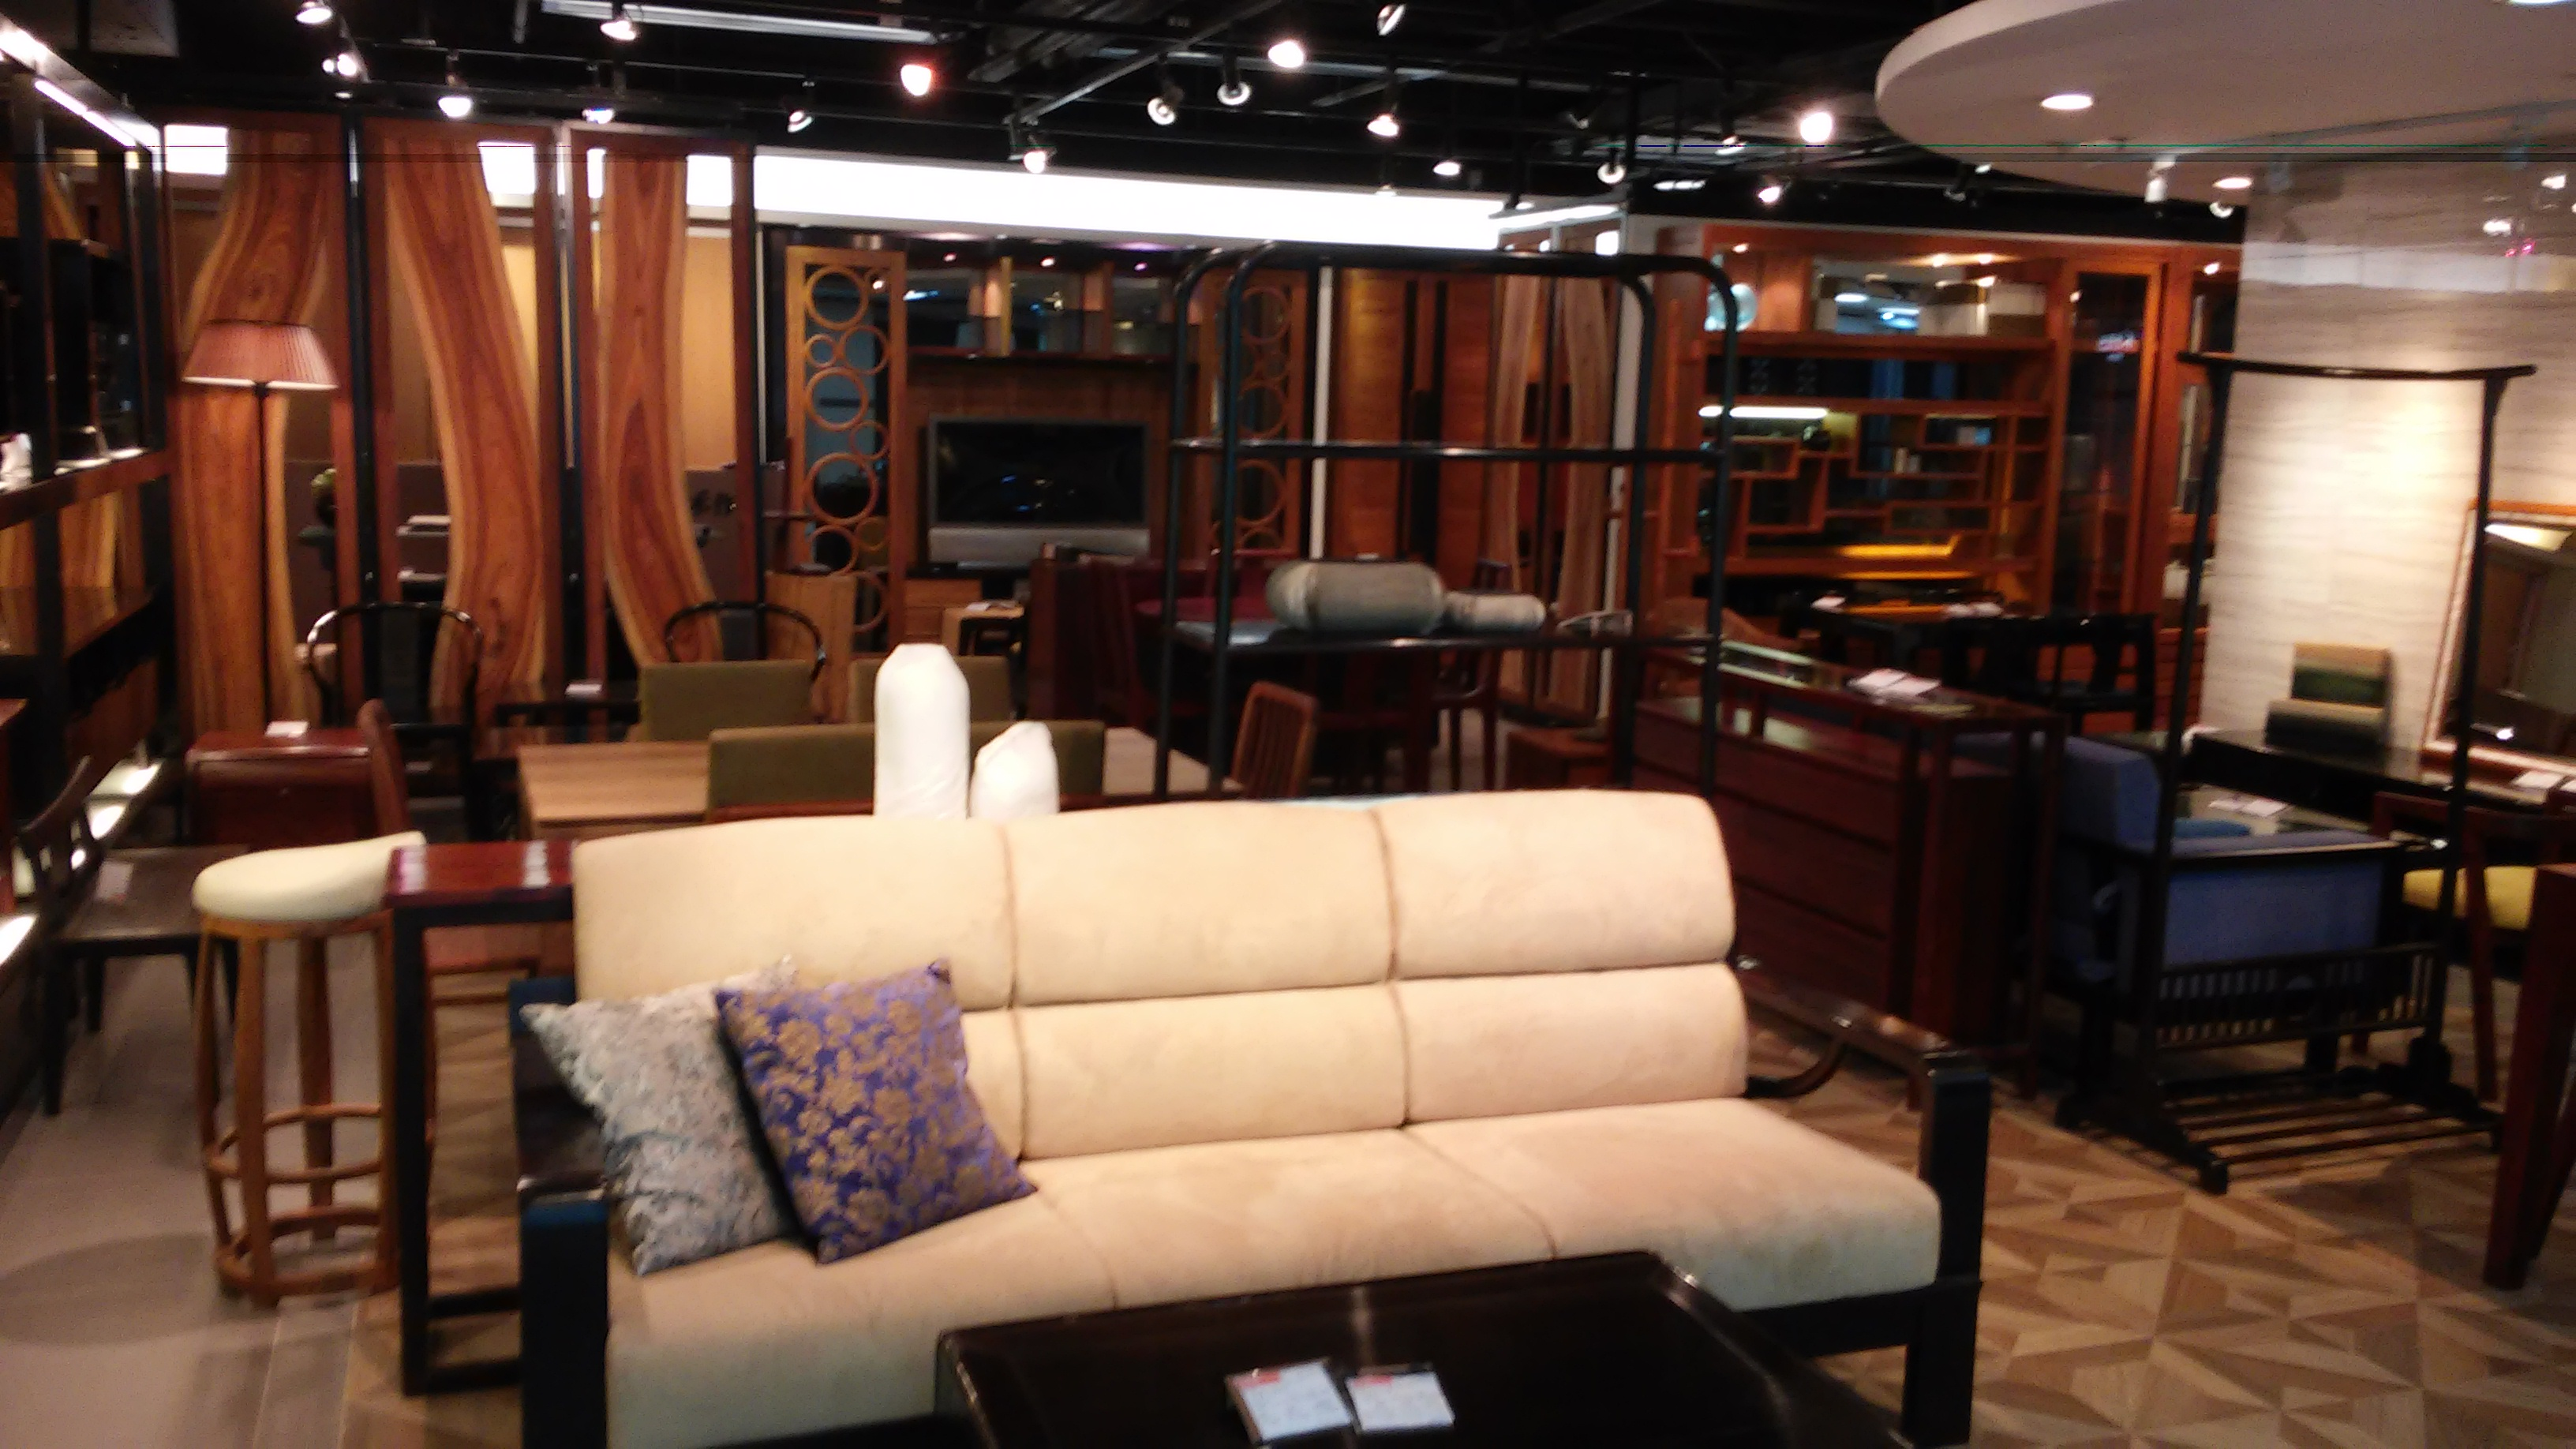 file hk kln bay emax home shopping mall furniture shop